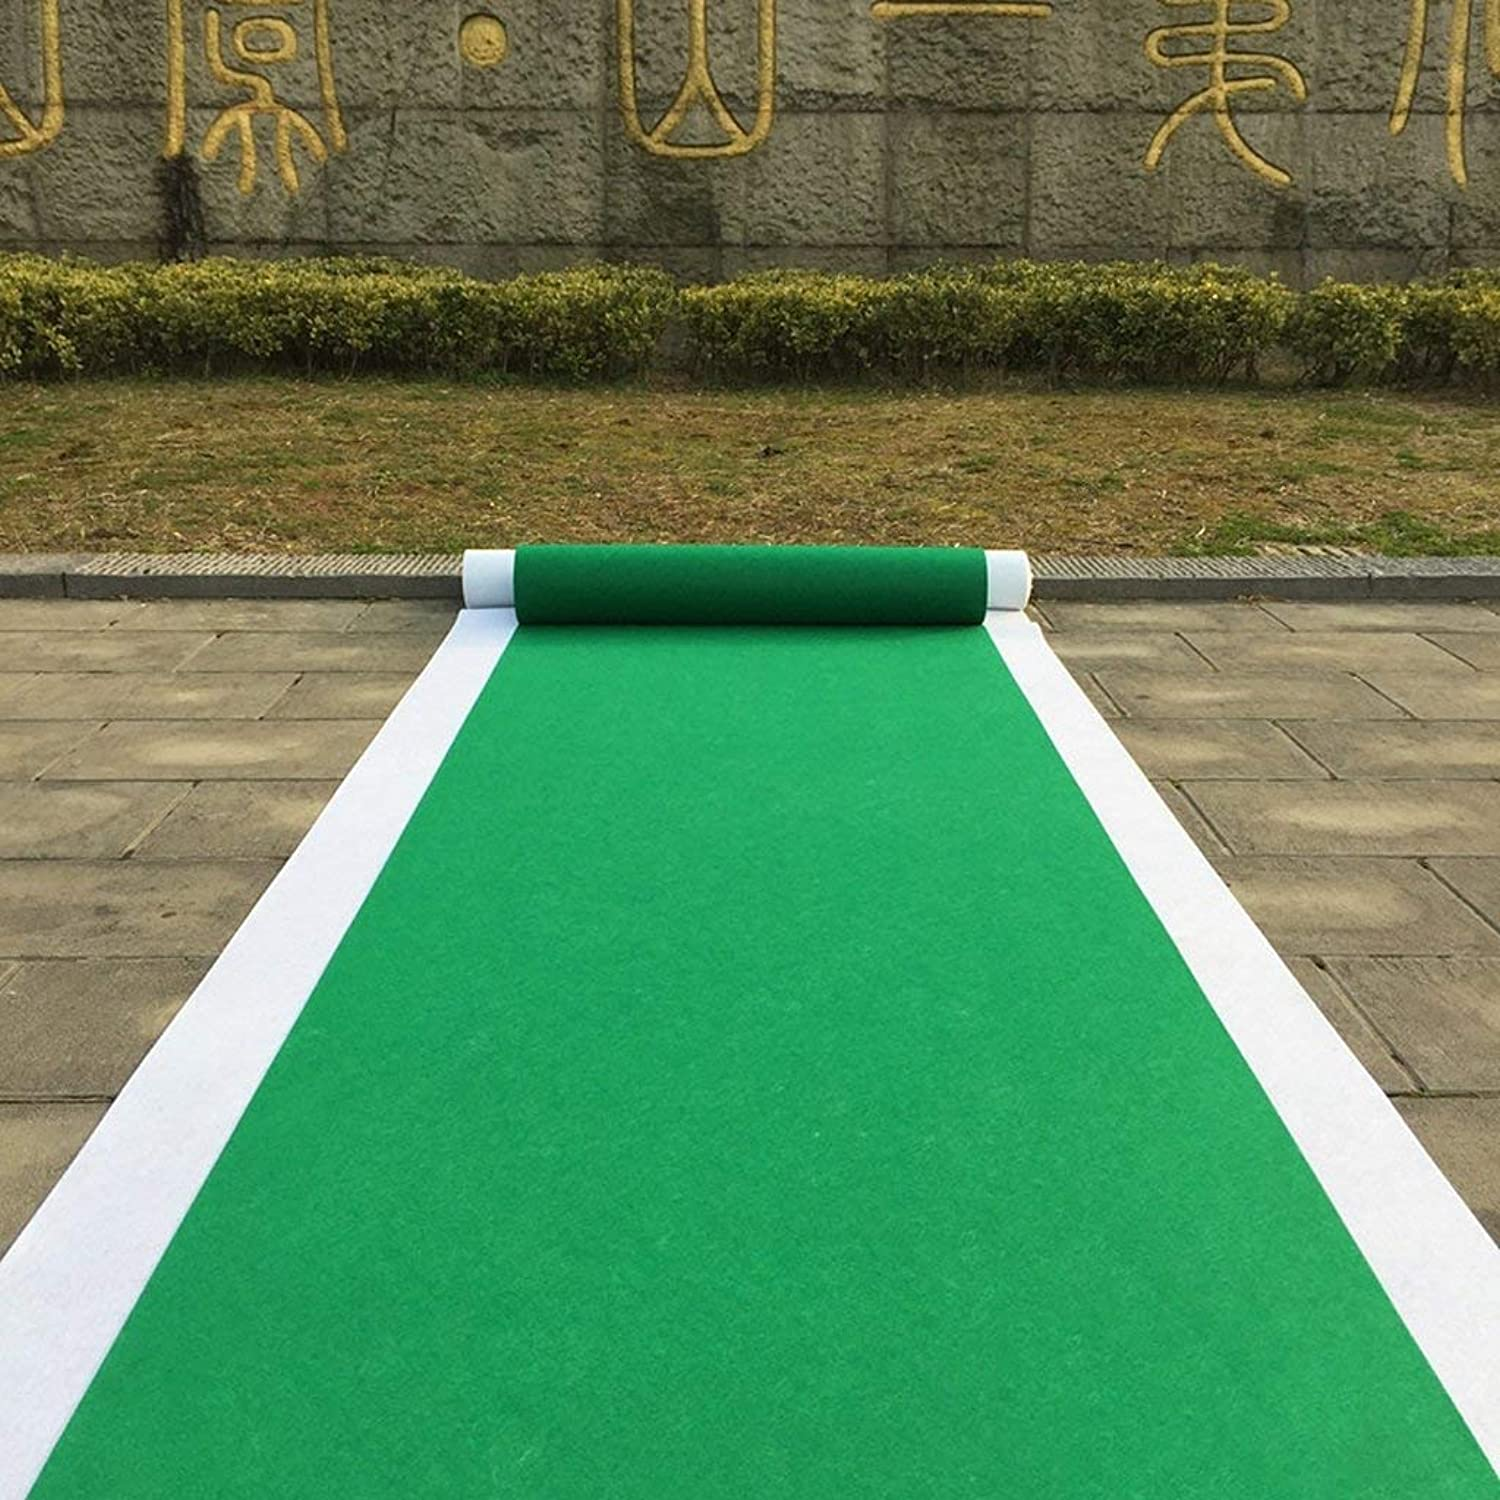 Royare Home Decorations mat Runner Solid color one-time Wedding Wedding Wedding Runner,Outdoor Garden Show Opening Full Shop Thickness of About 2mm Household Products